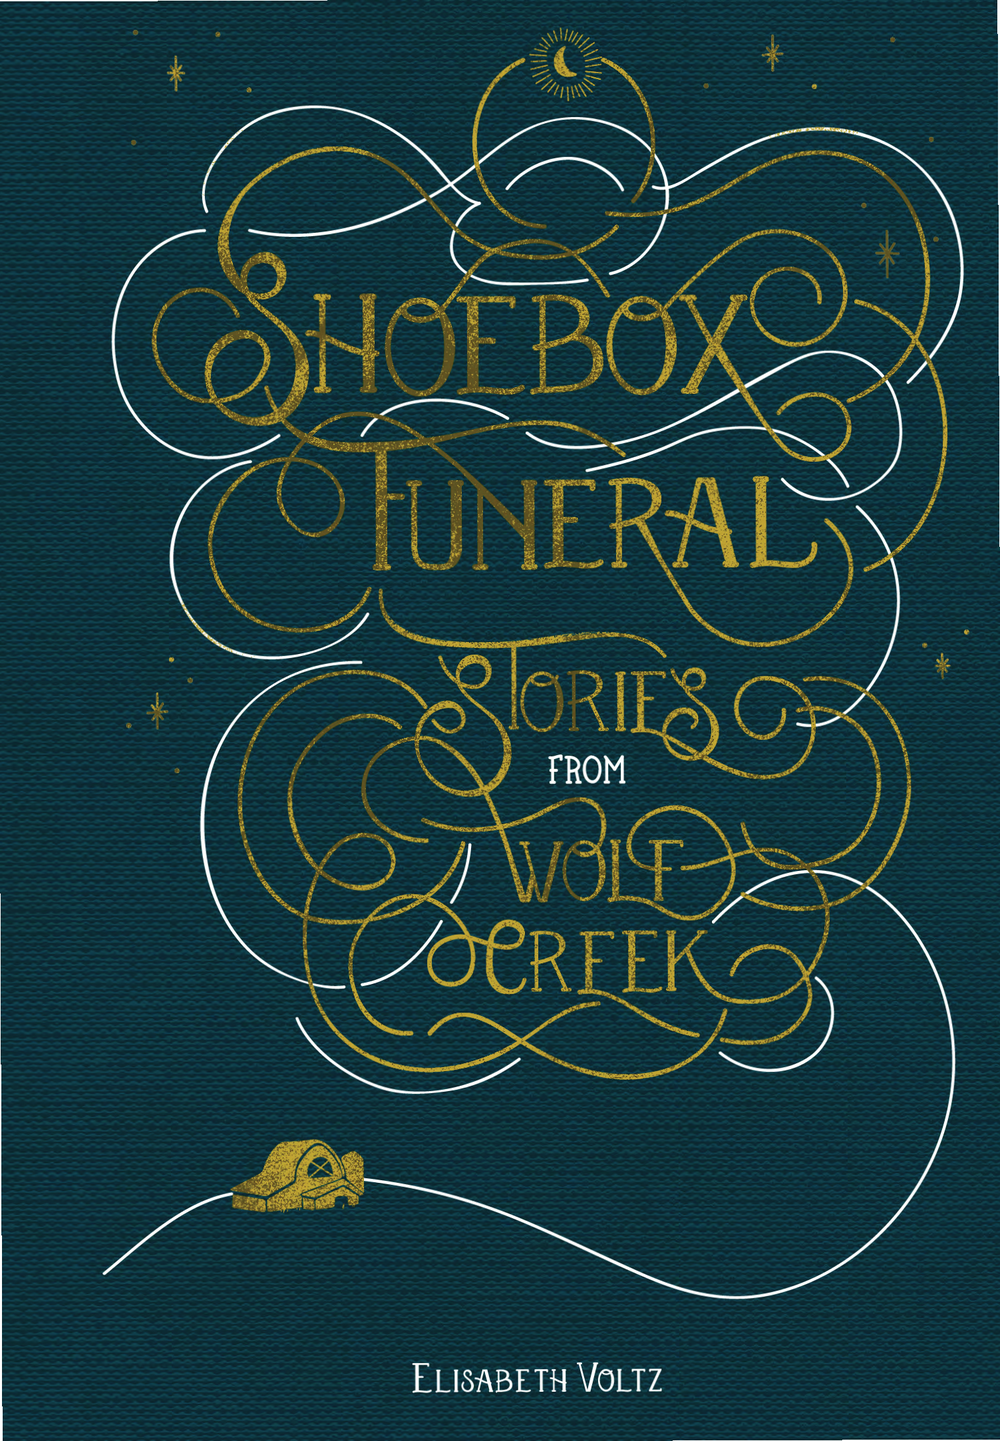 Shoebox Funeral: Stories from Wolf Creek, Elisabeth Voltz. Animal Media Group LLC, July 2017. 250 pp.